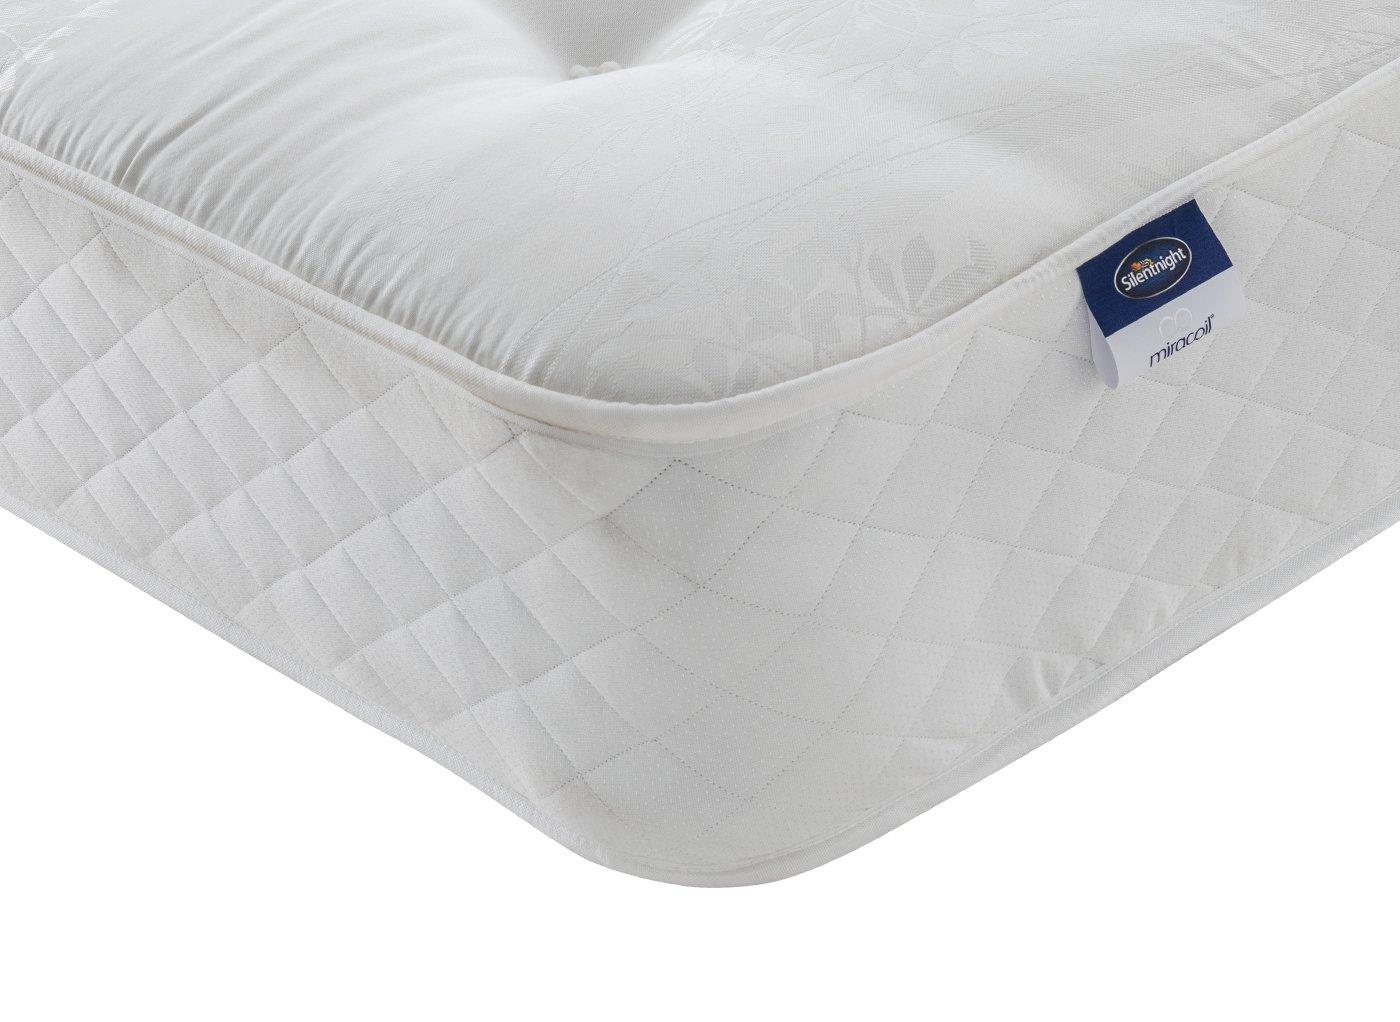 Silentnight Epping D Mattress 4'6 Double